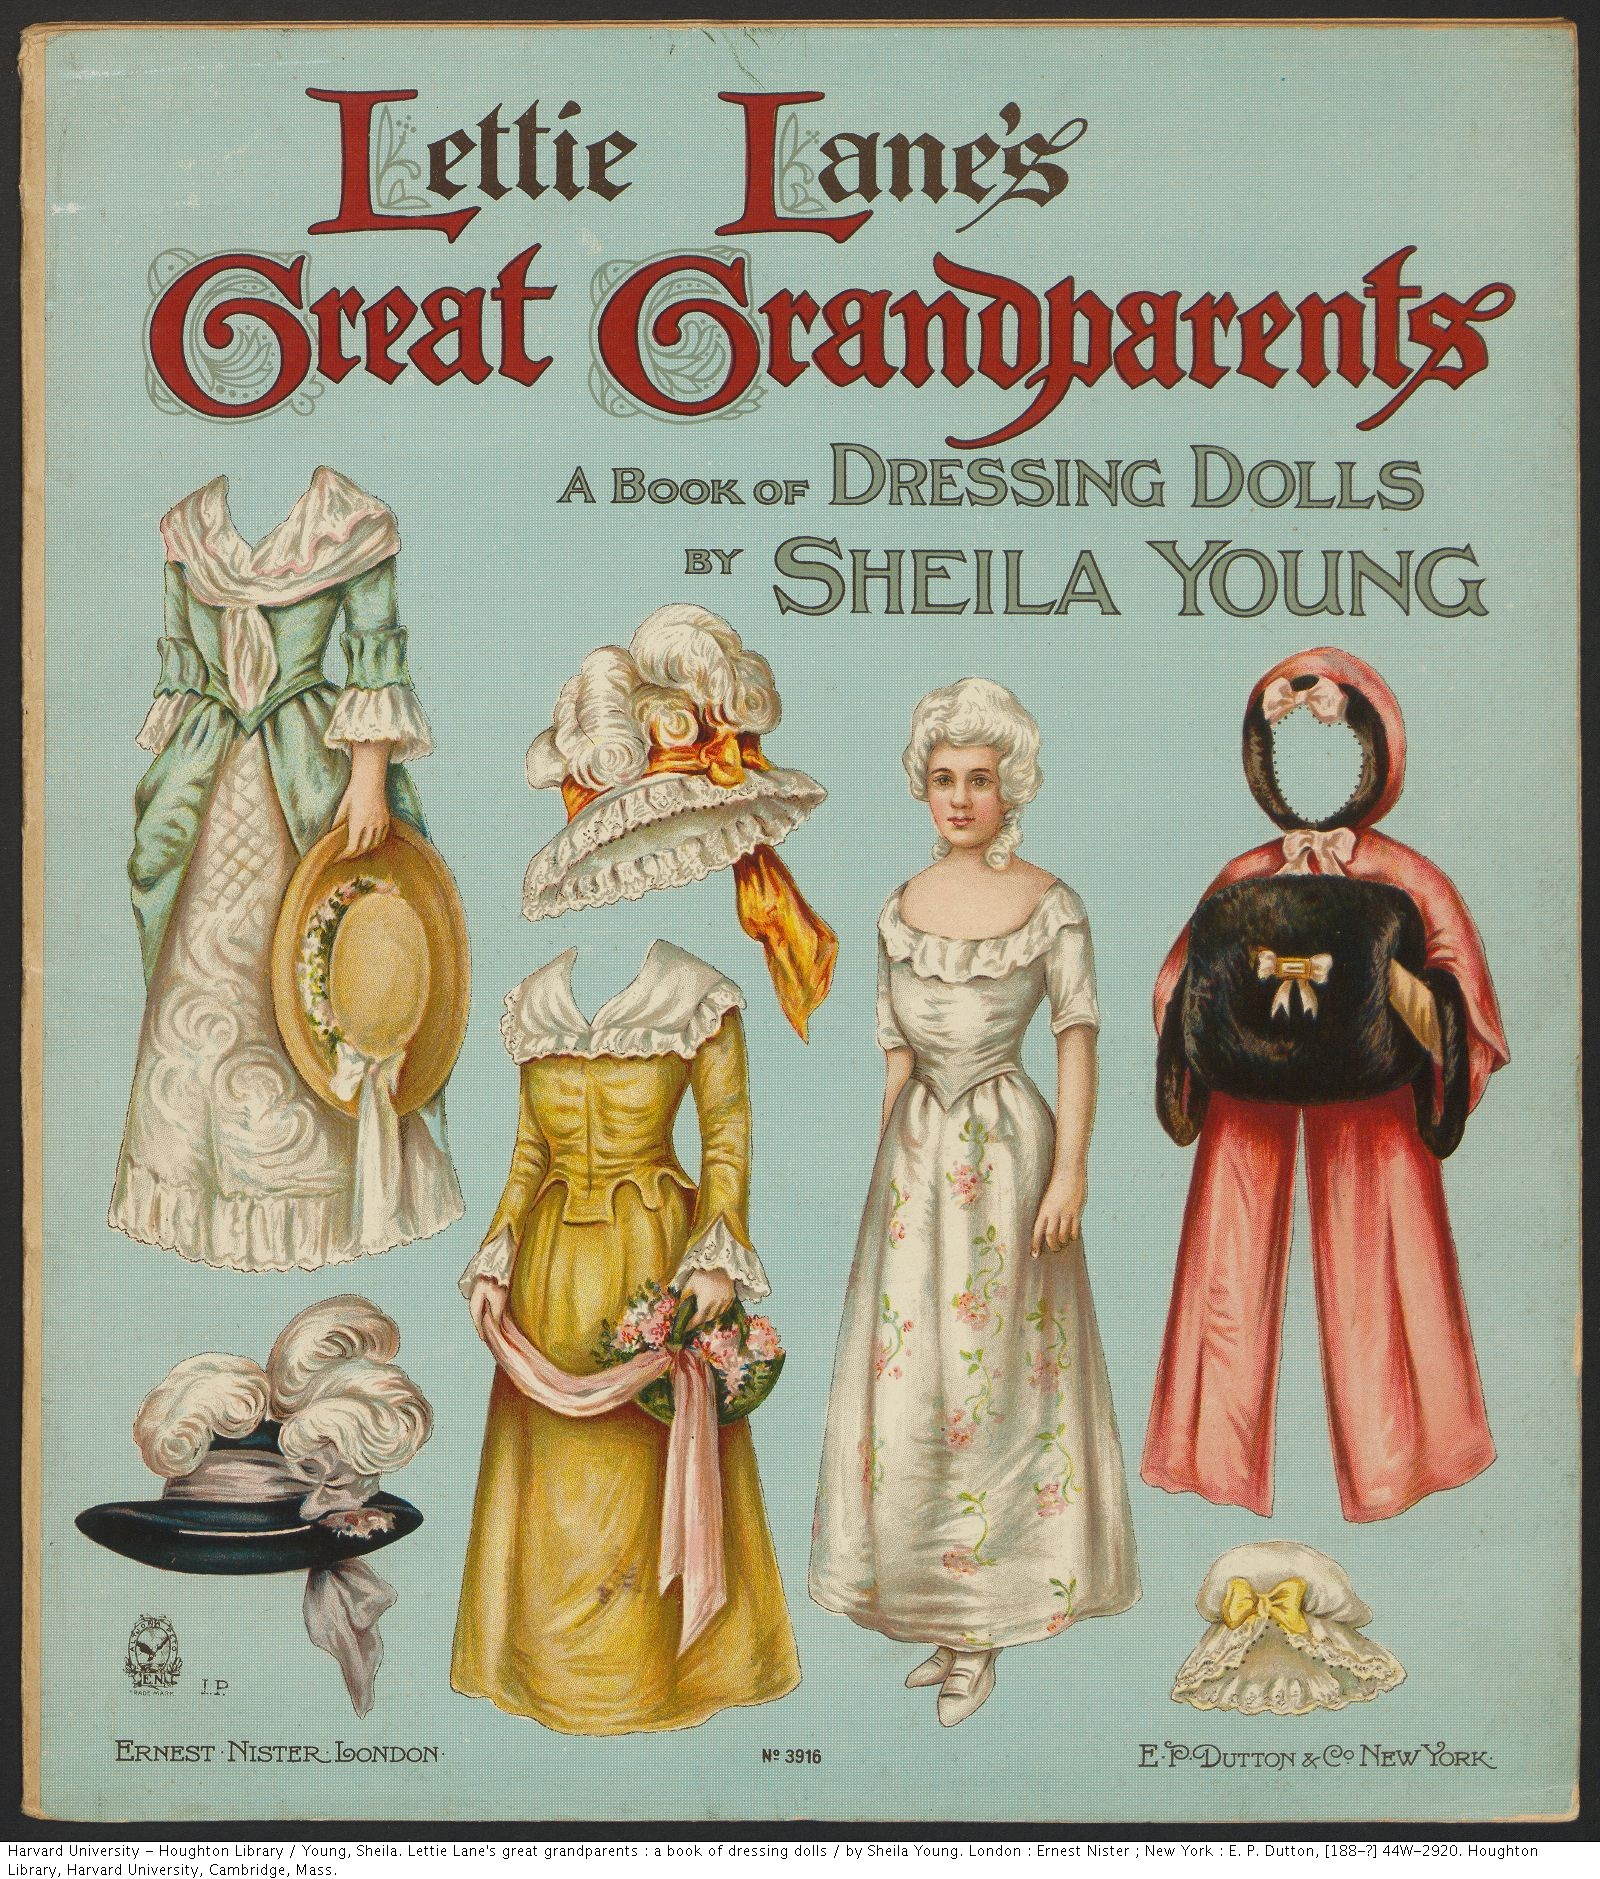 Young, Sheila. Lettie Lane's great grandparents : a book of dressing dolls. 44W-2920